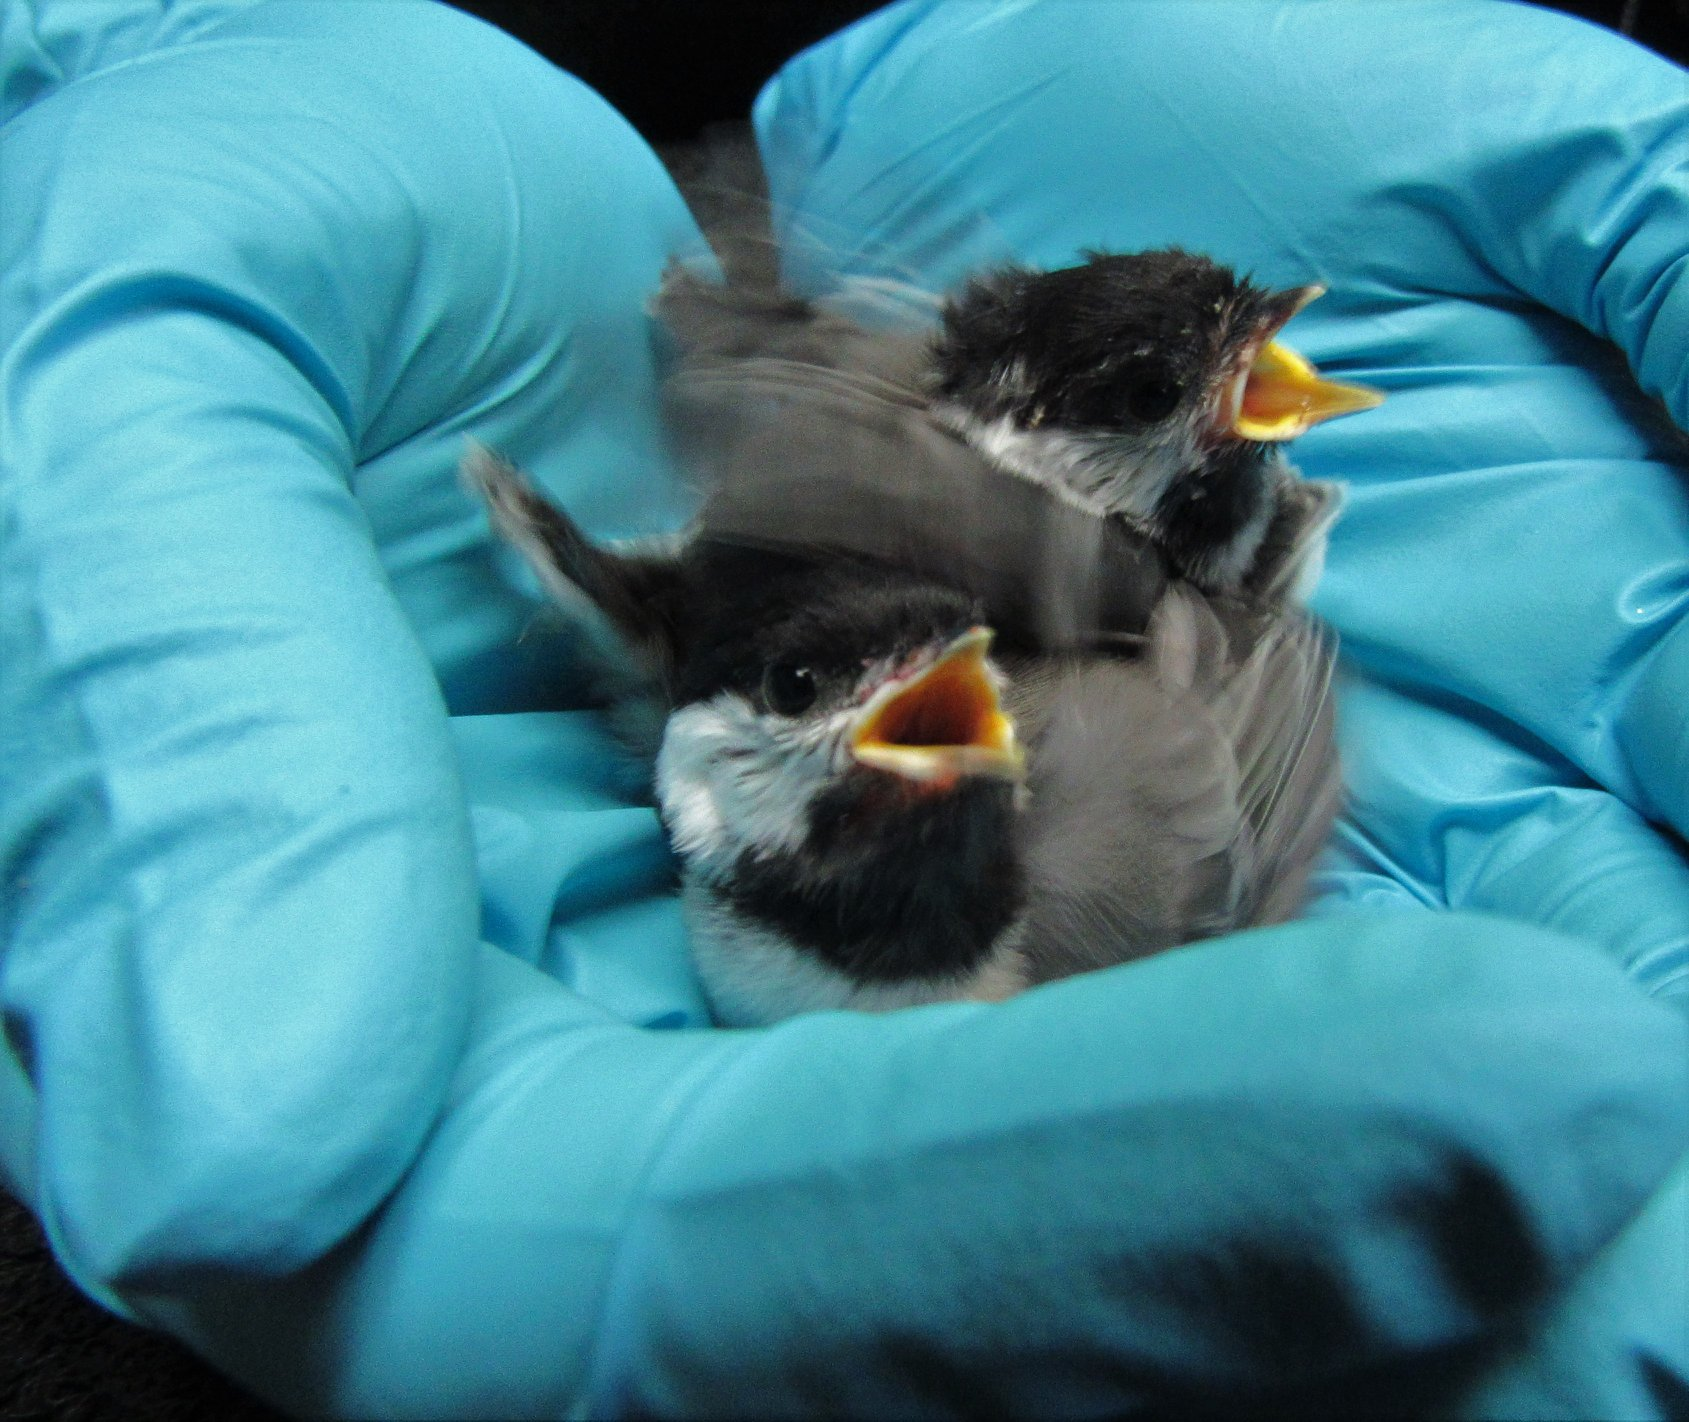 Chickadee babies are so active and energetic